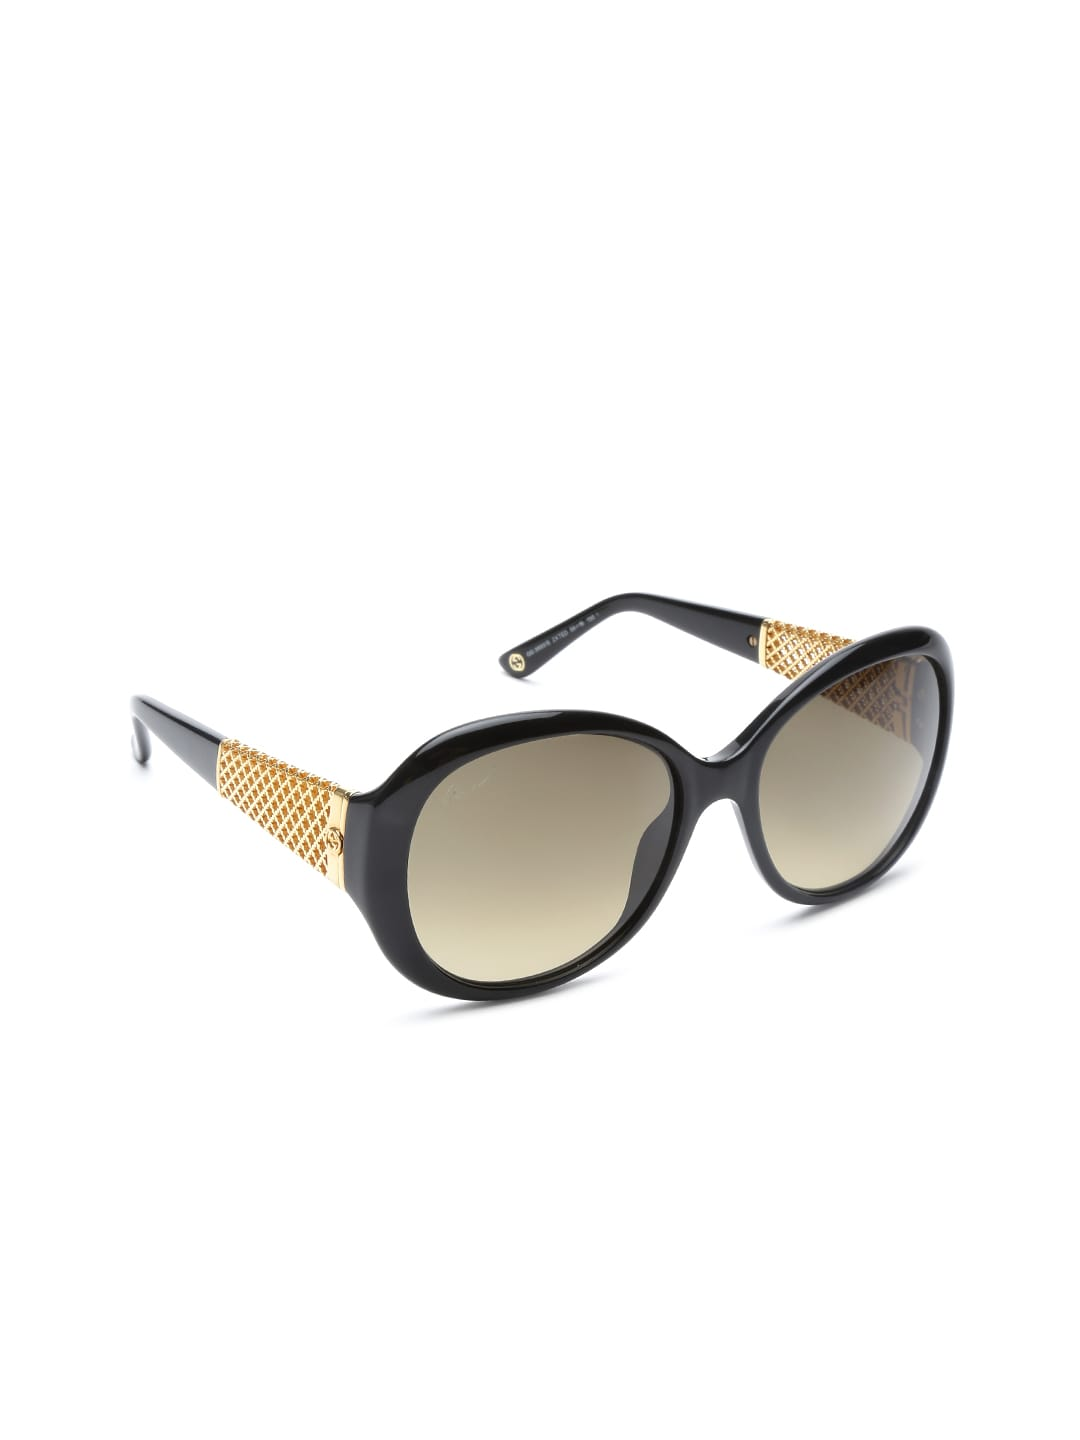 Gucci Women Butterfly Sunglasses GG 3693/S 2XTED